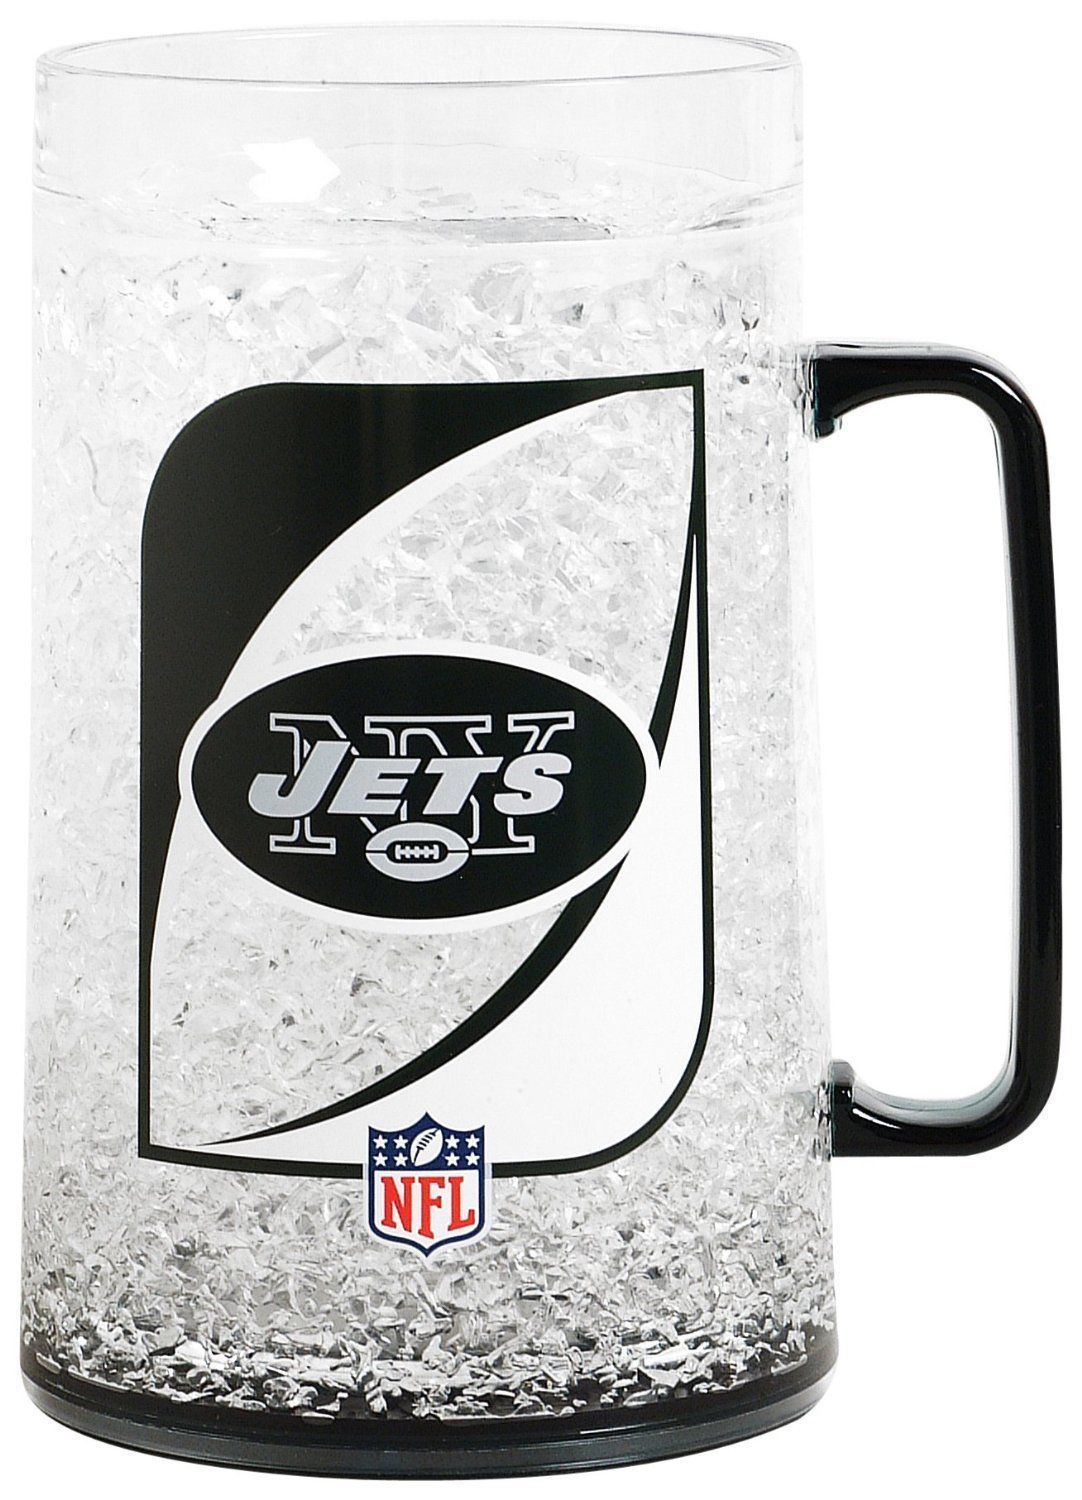 Duck House Sports NFL New York Jets Monster Mug 5386